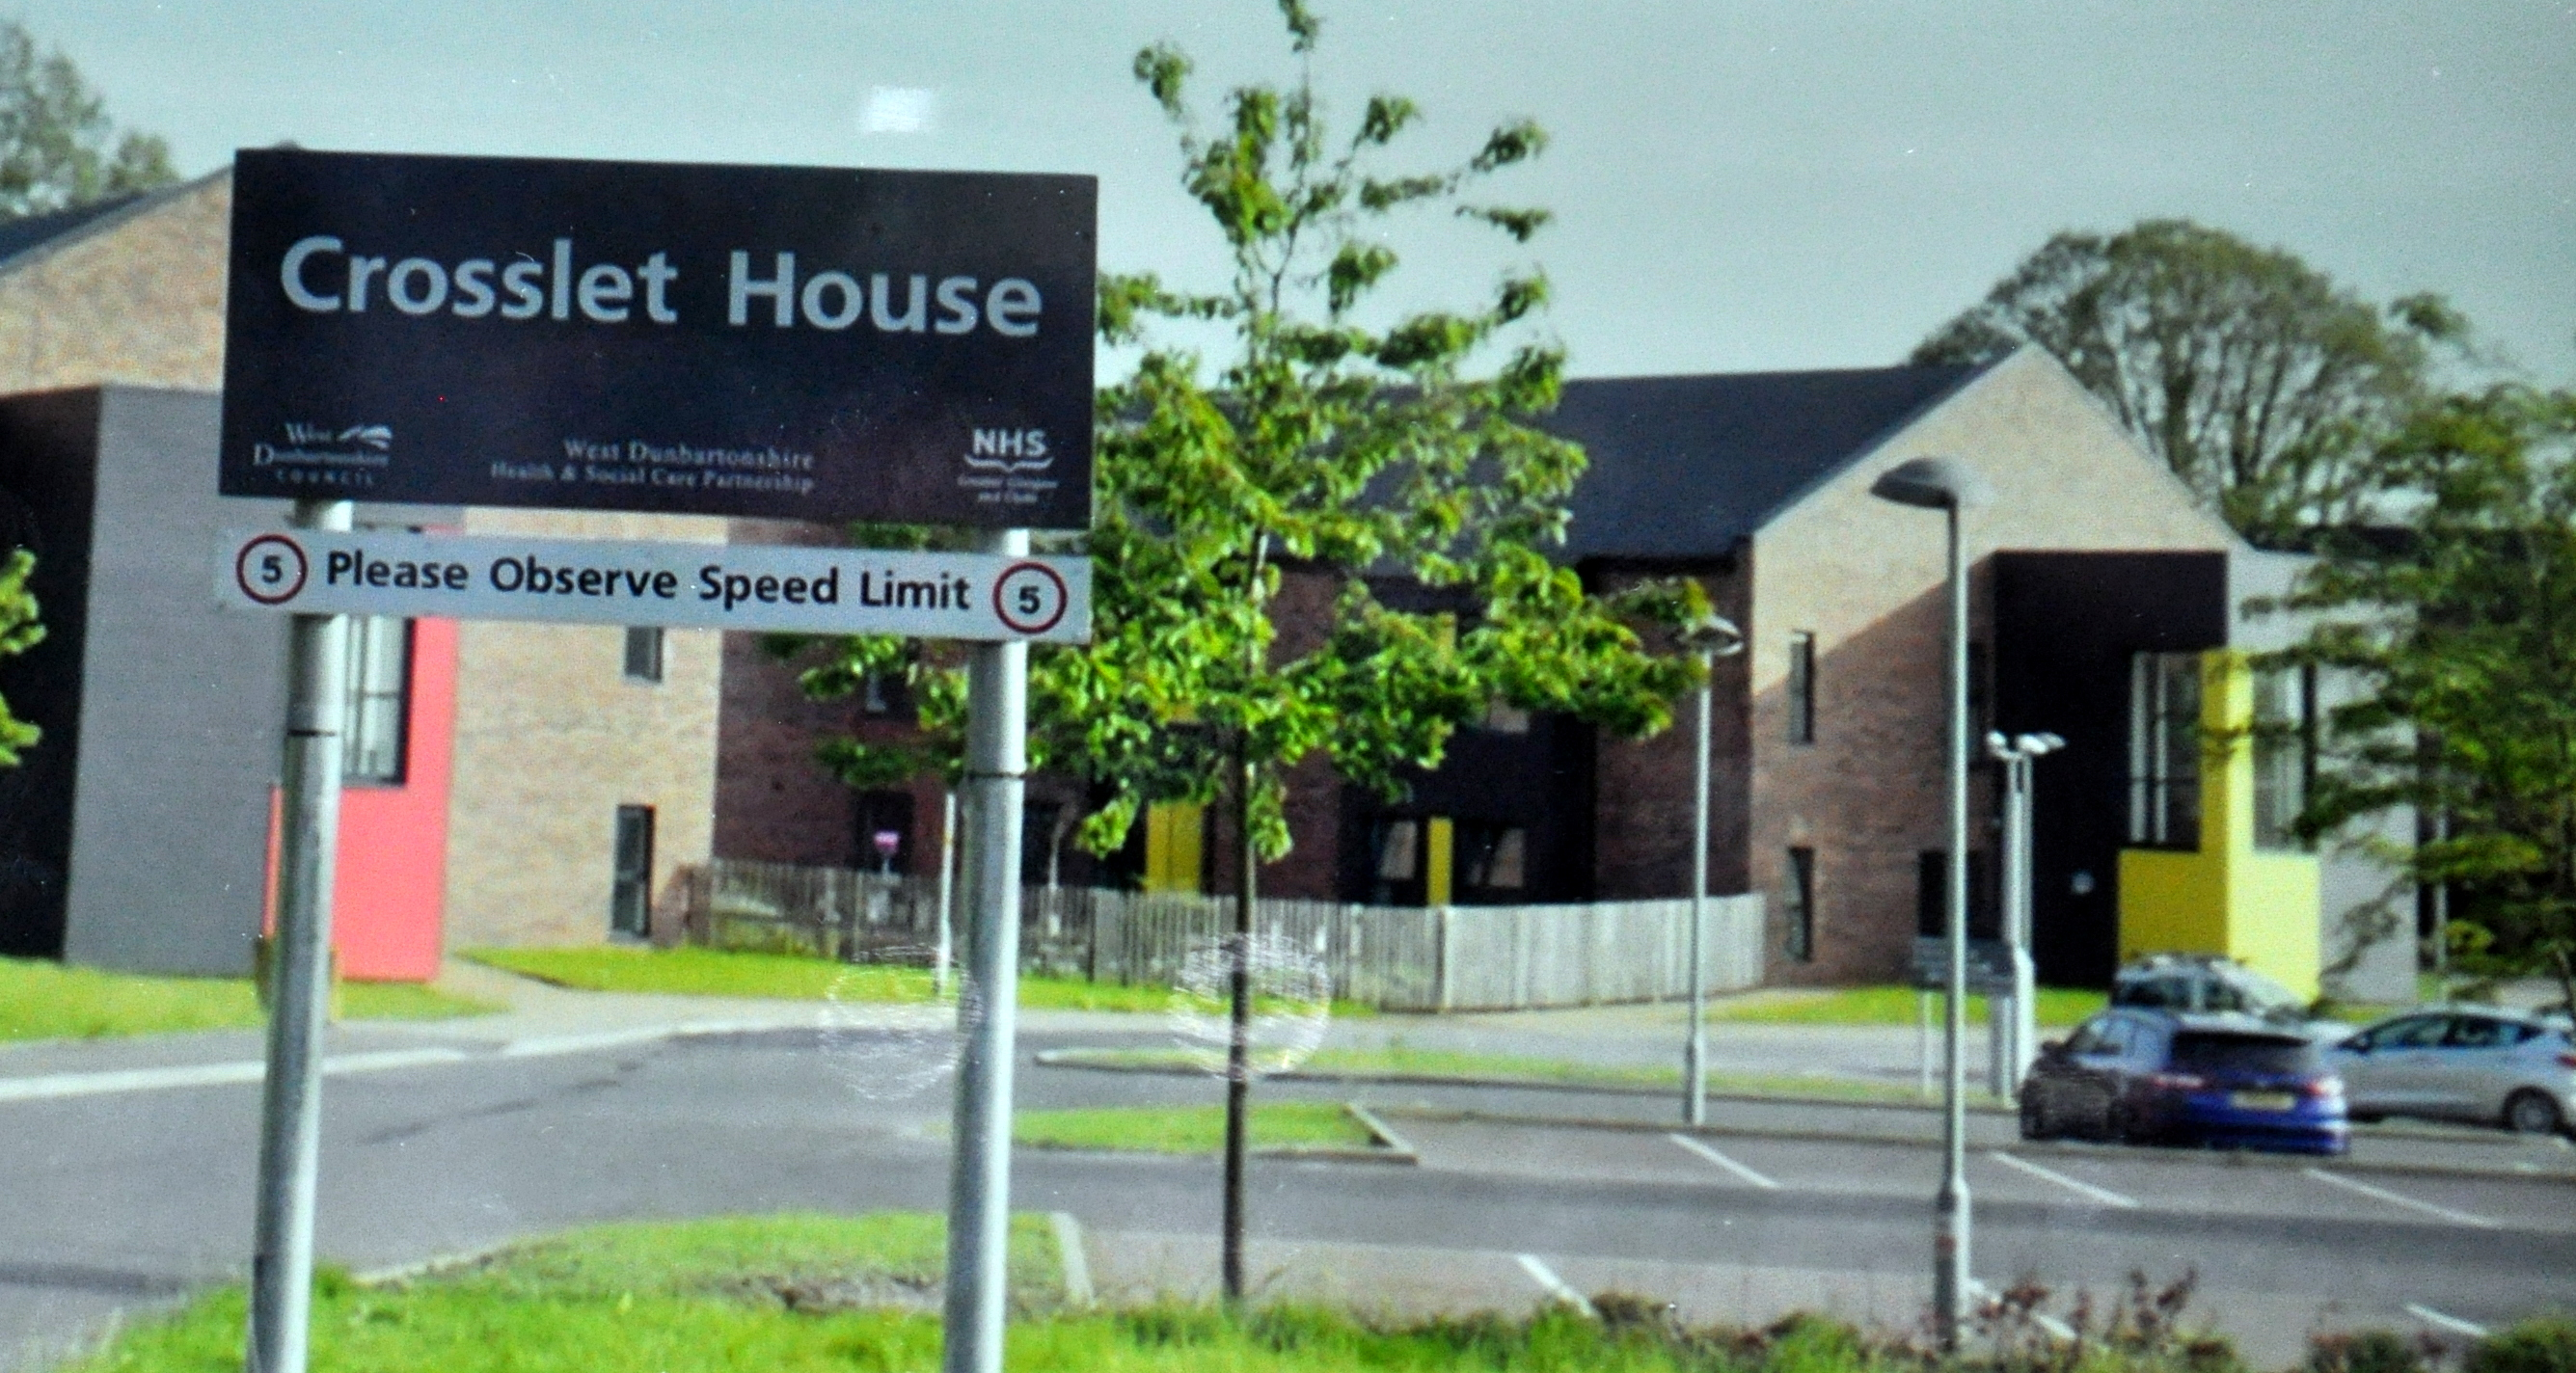 CARE HOMES SCANDAL: STURGEON AND FREEMAN SHAMEFULLY NEGLECTFUL AND PUT LIVES AT RISK